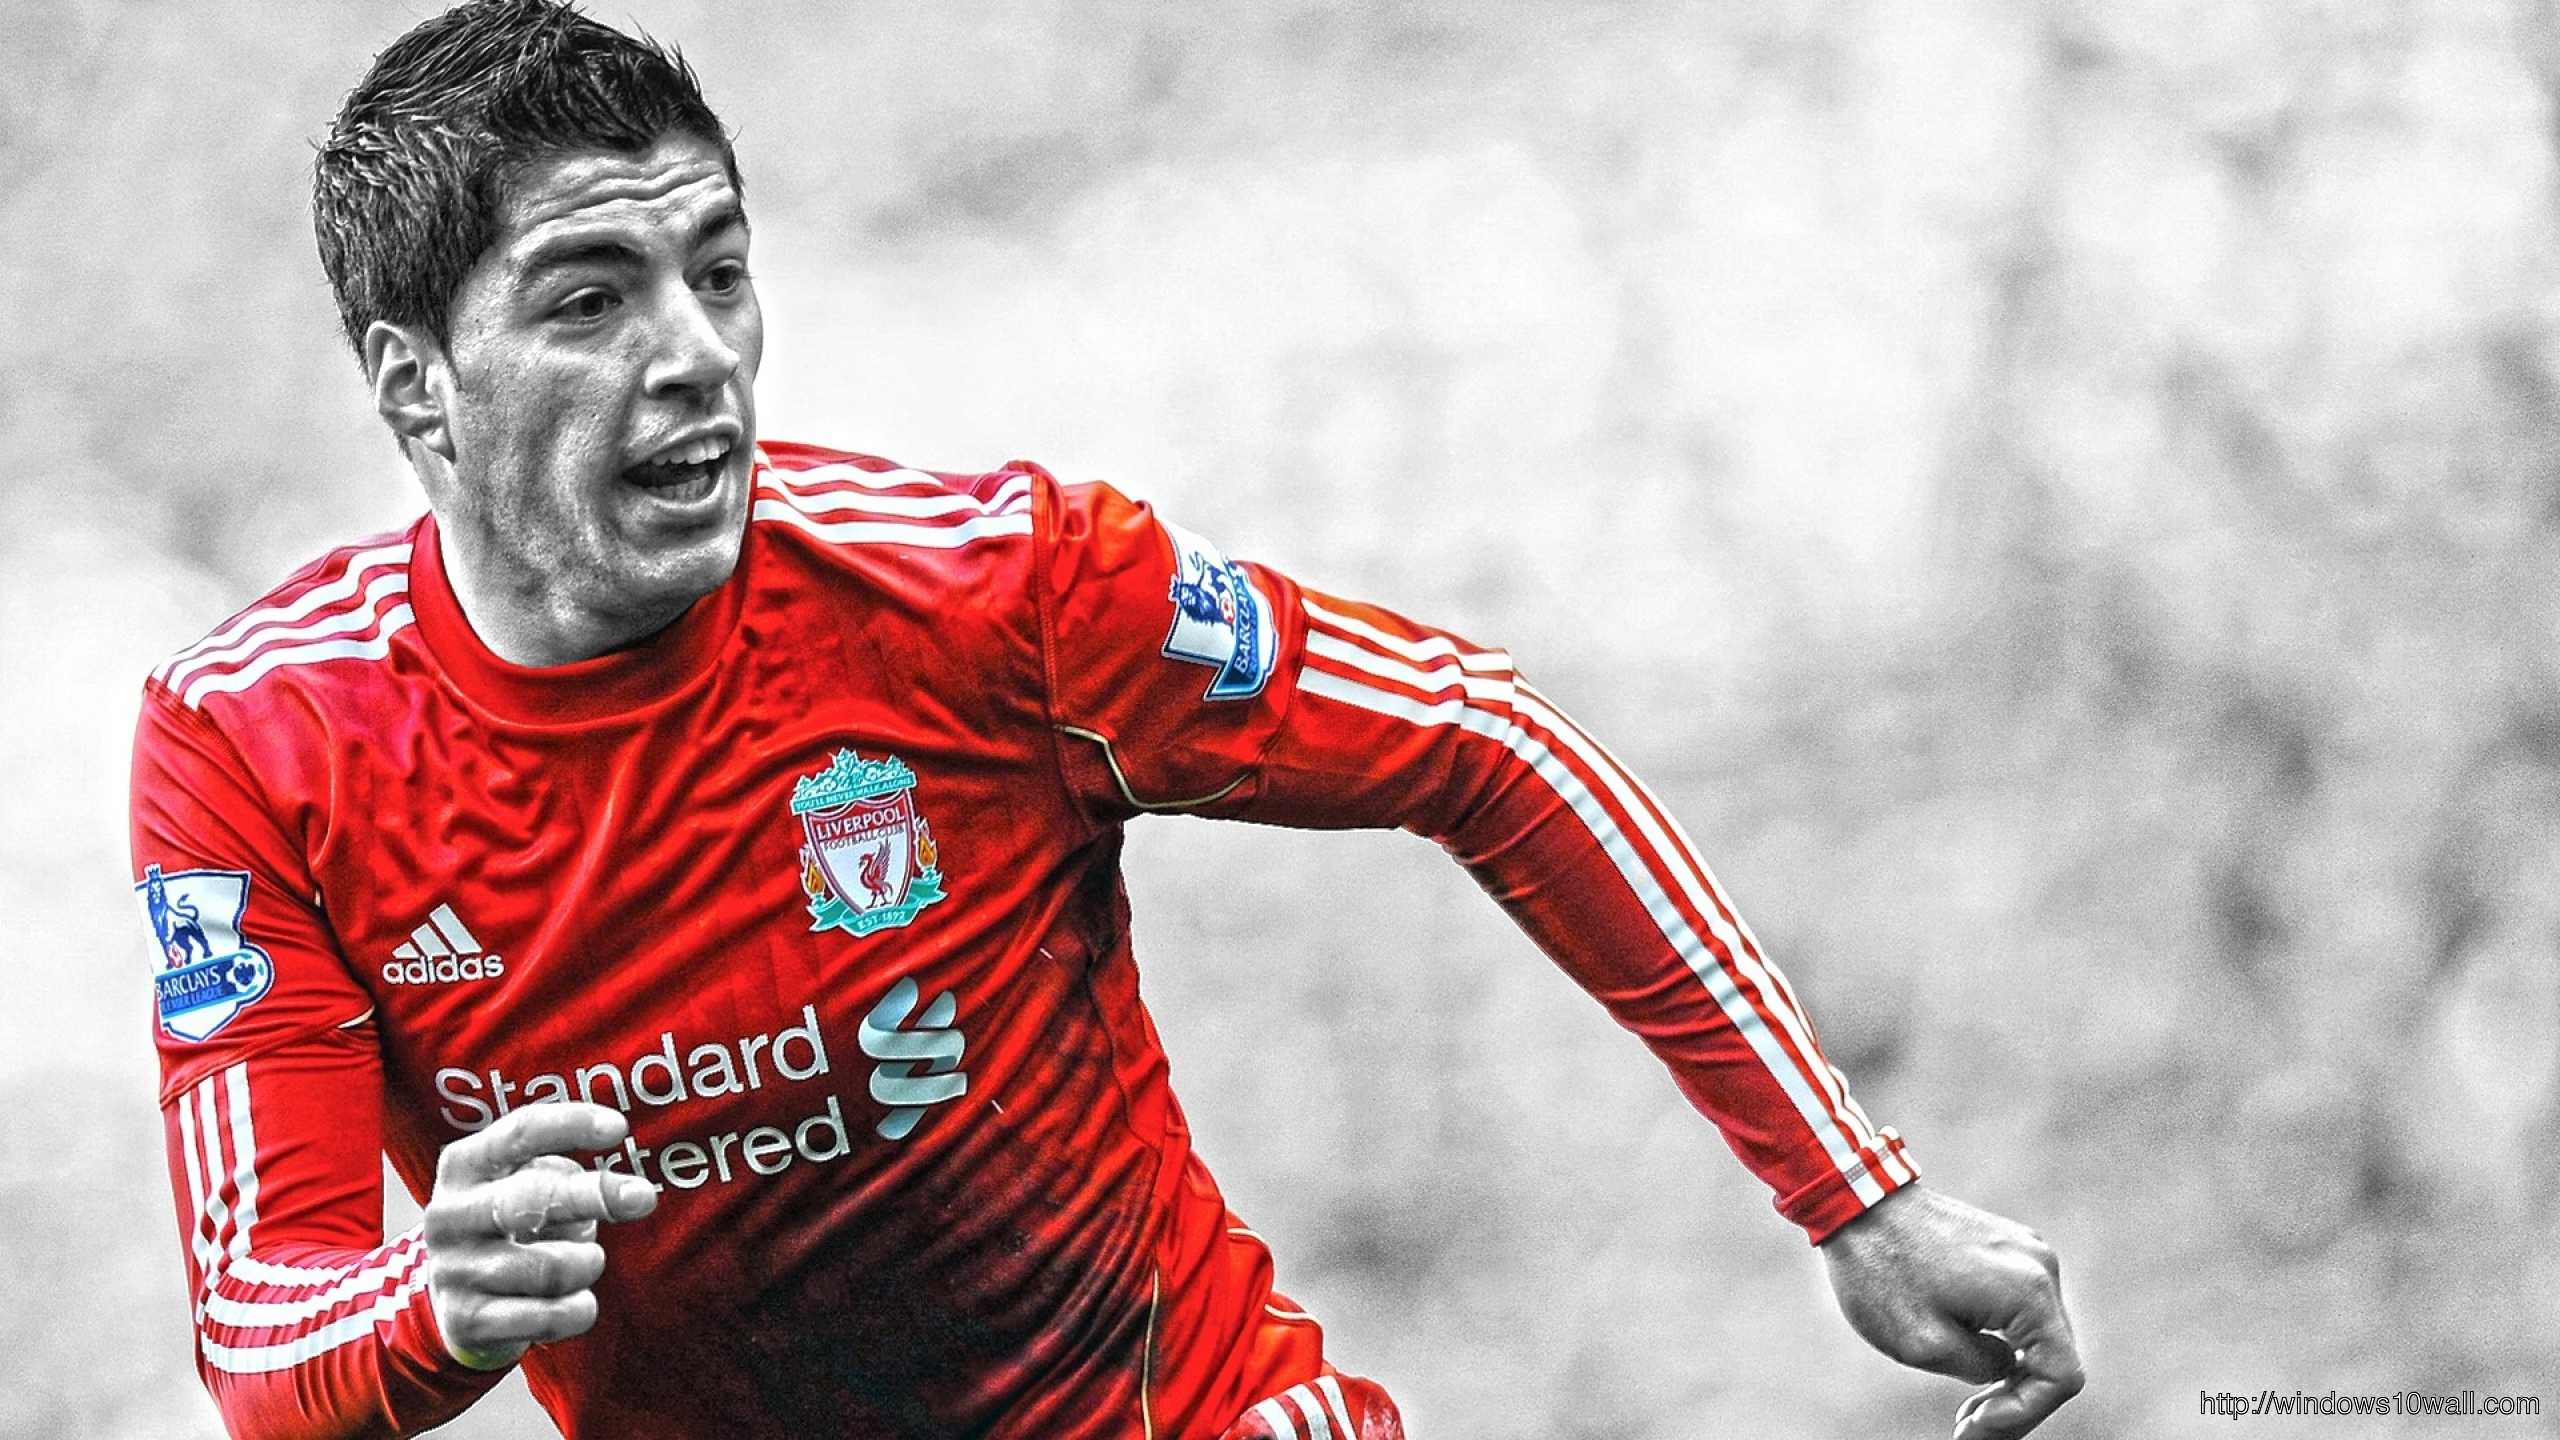 Luis suarez 2014 liverpool hd wallpaper windows 10 wallpapers - Suarez liverpool wallpaper ...